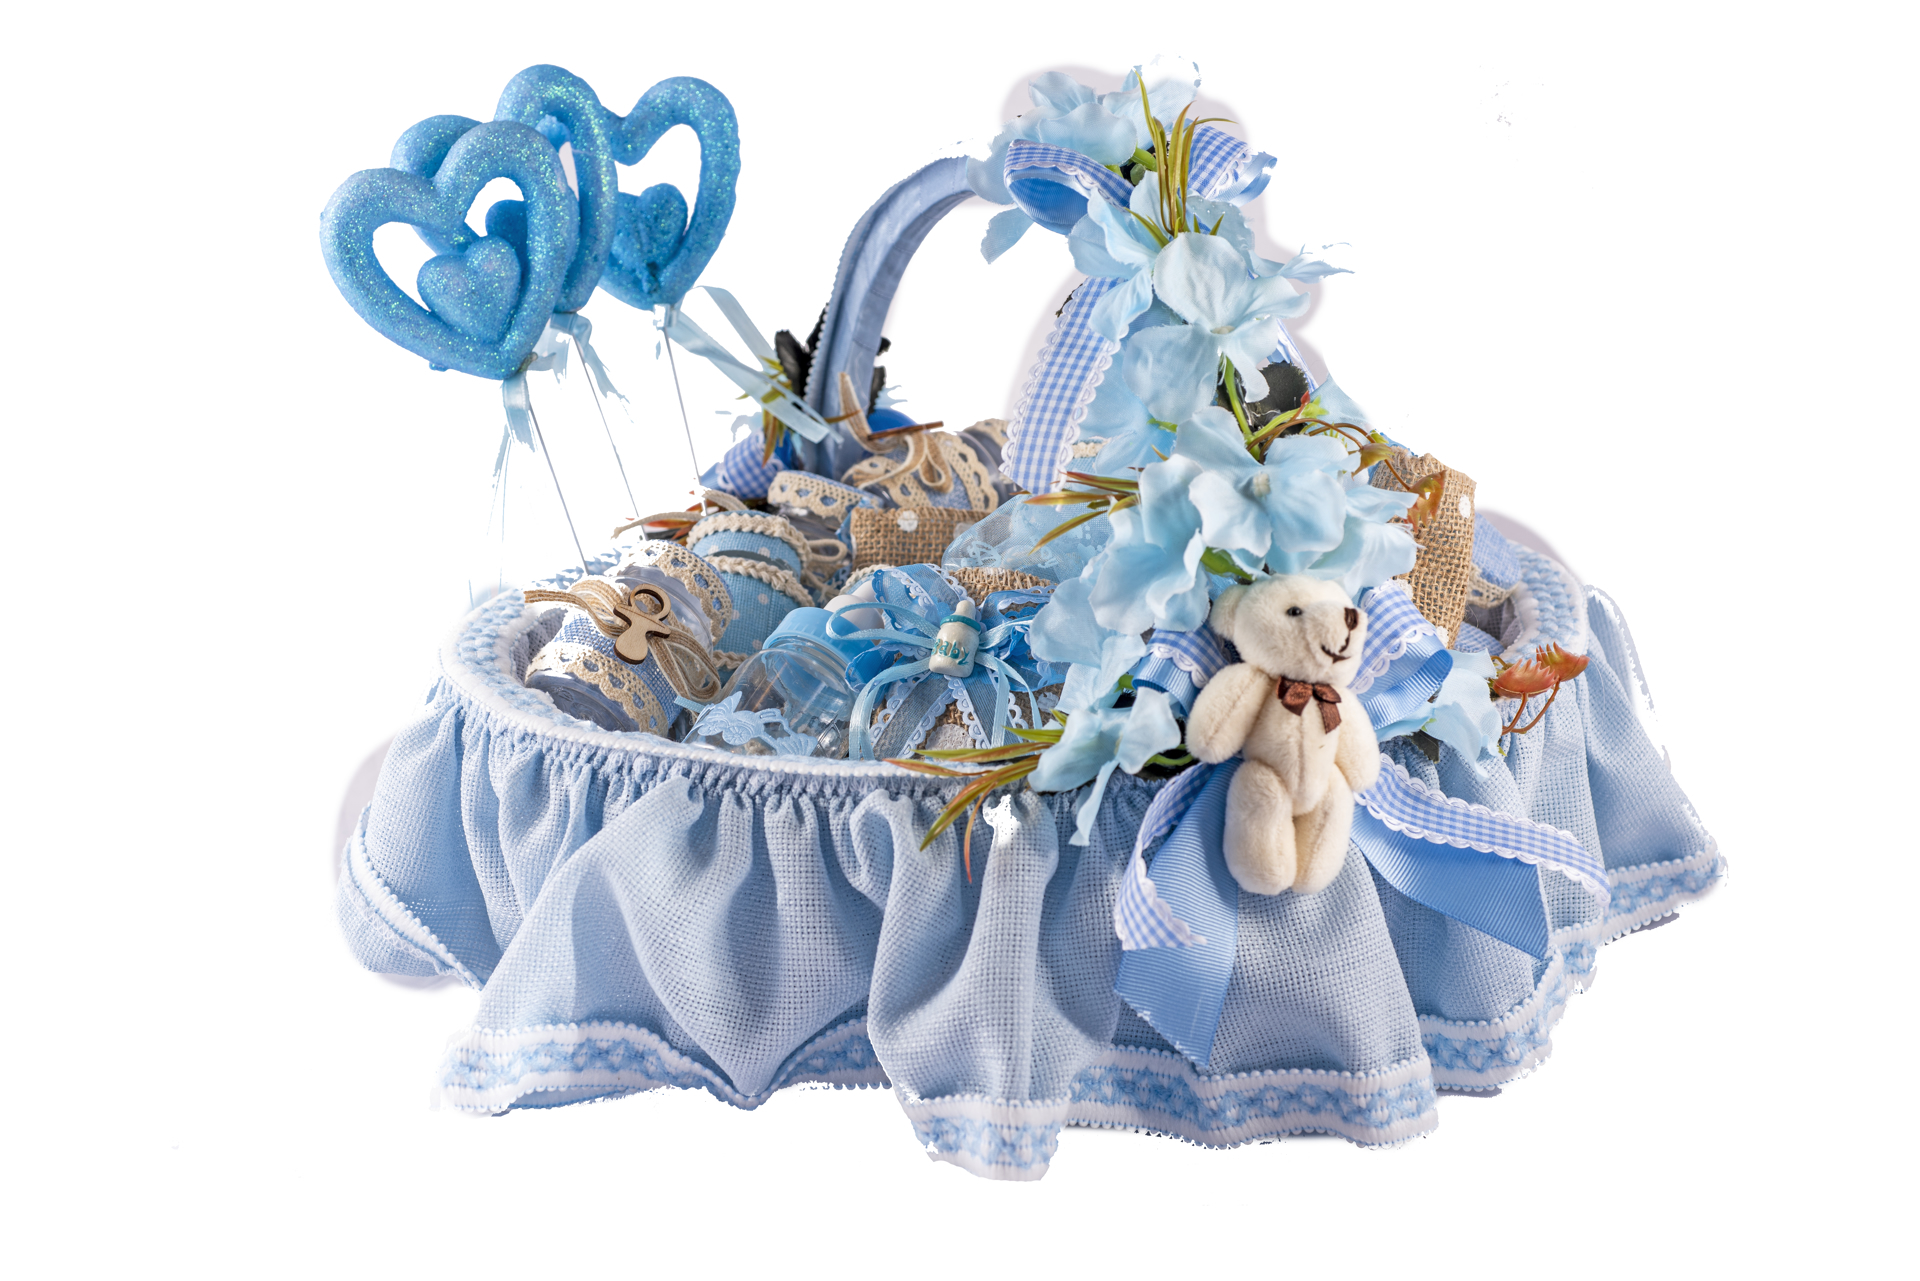 Picture of New born baby party basket  57 pieces Blue color